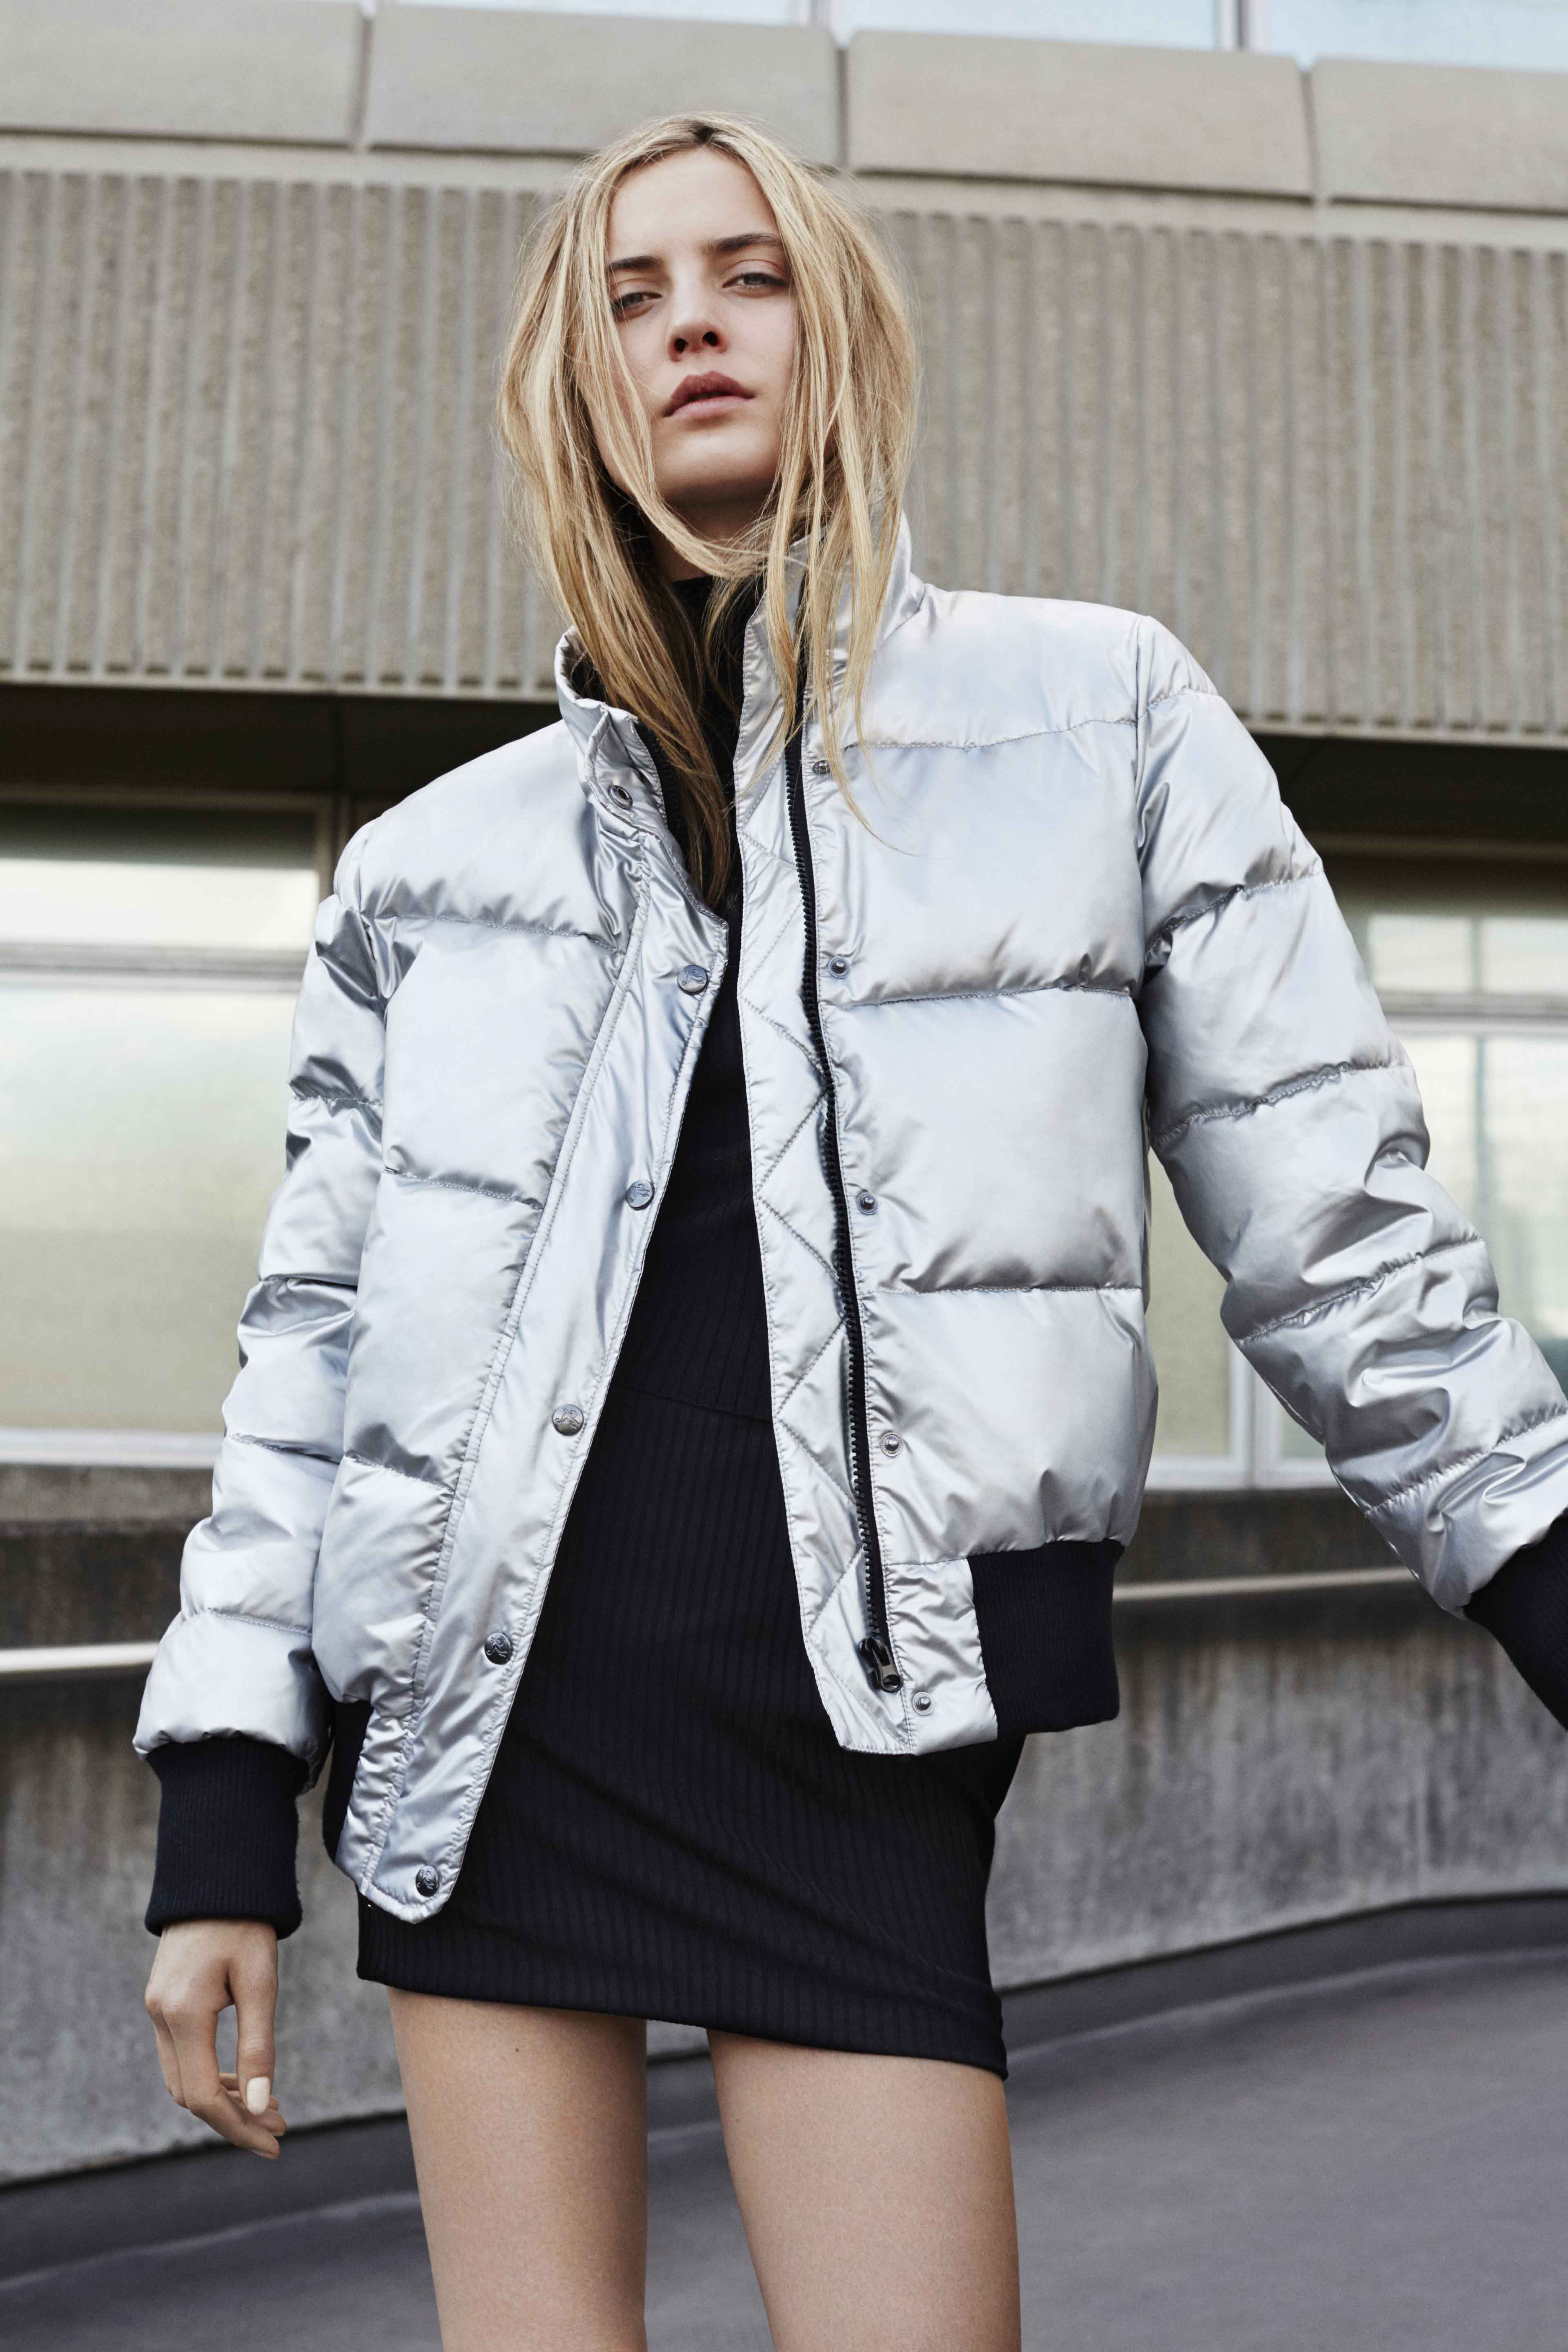 516ccac9635d79 PUFF MUMMIES   MINIS! WHY THE PADDED JACKET TREND HAS BLOWN UP FOR ...